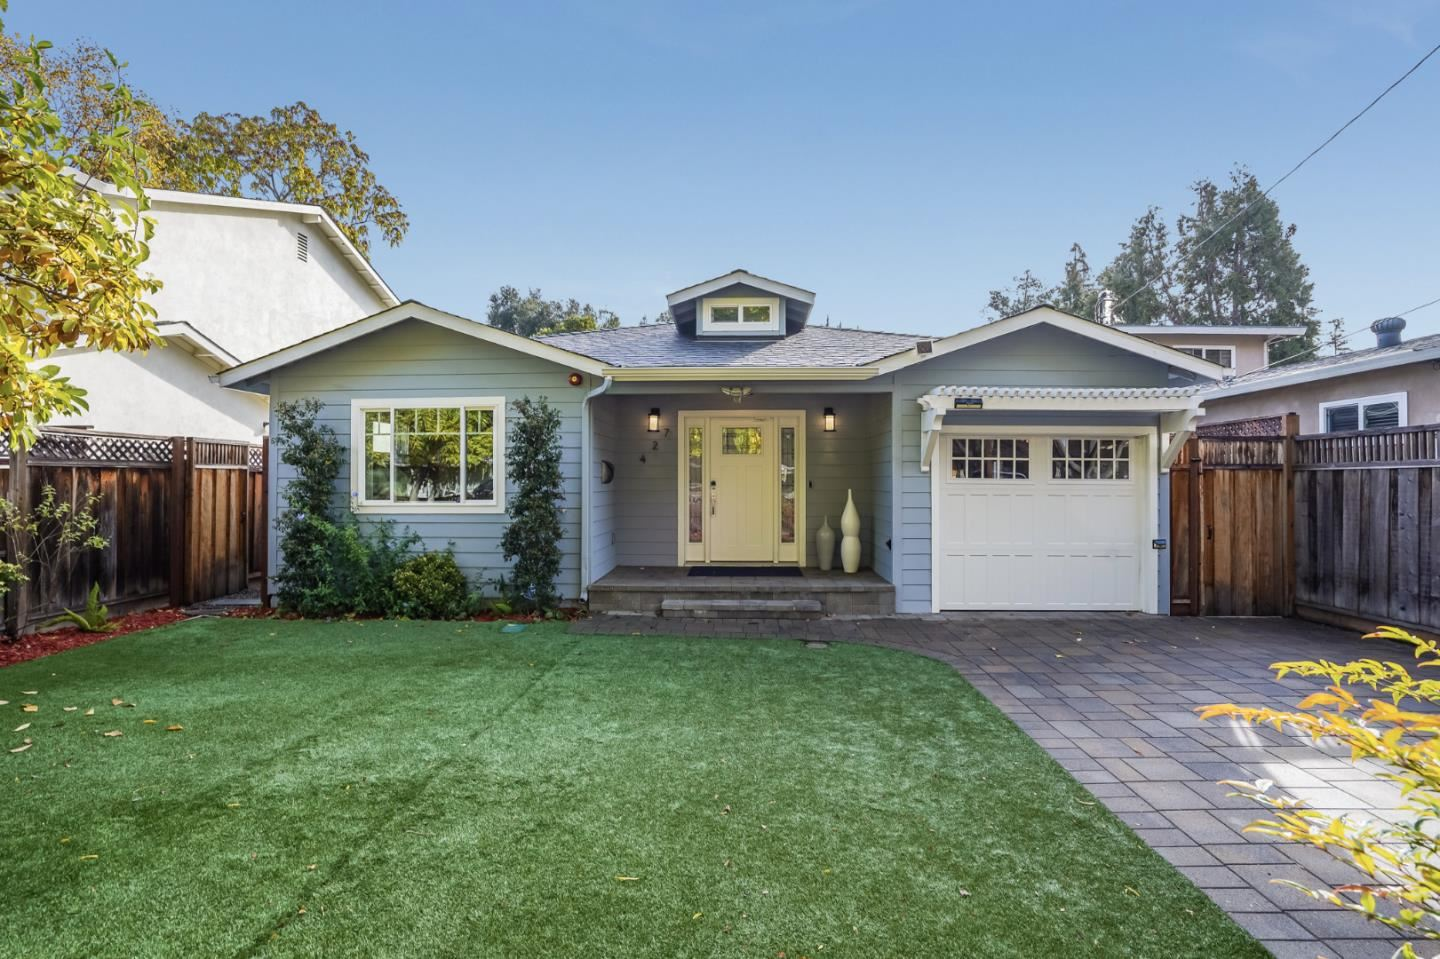 Photo for 427 Chiquita AVE, MOUNTAIN VIEW, CA 94041 (MLS # ML81813126)